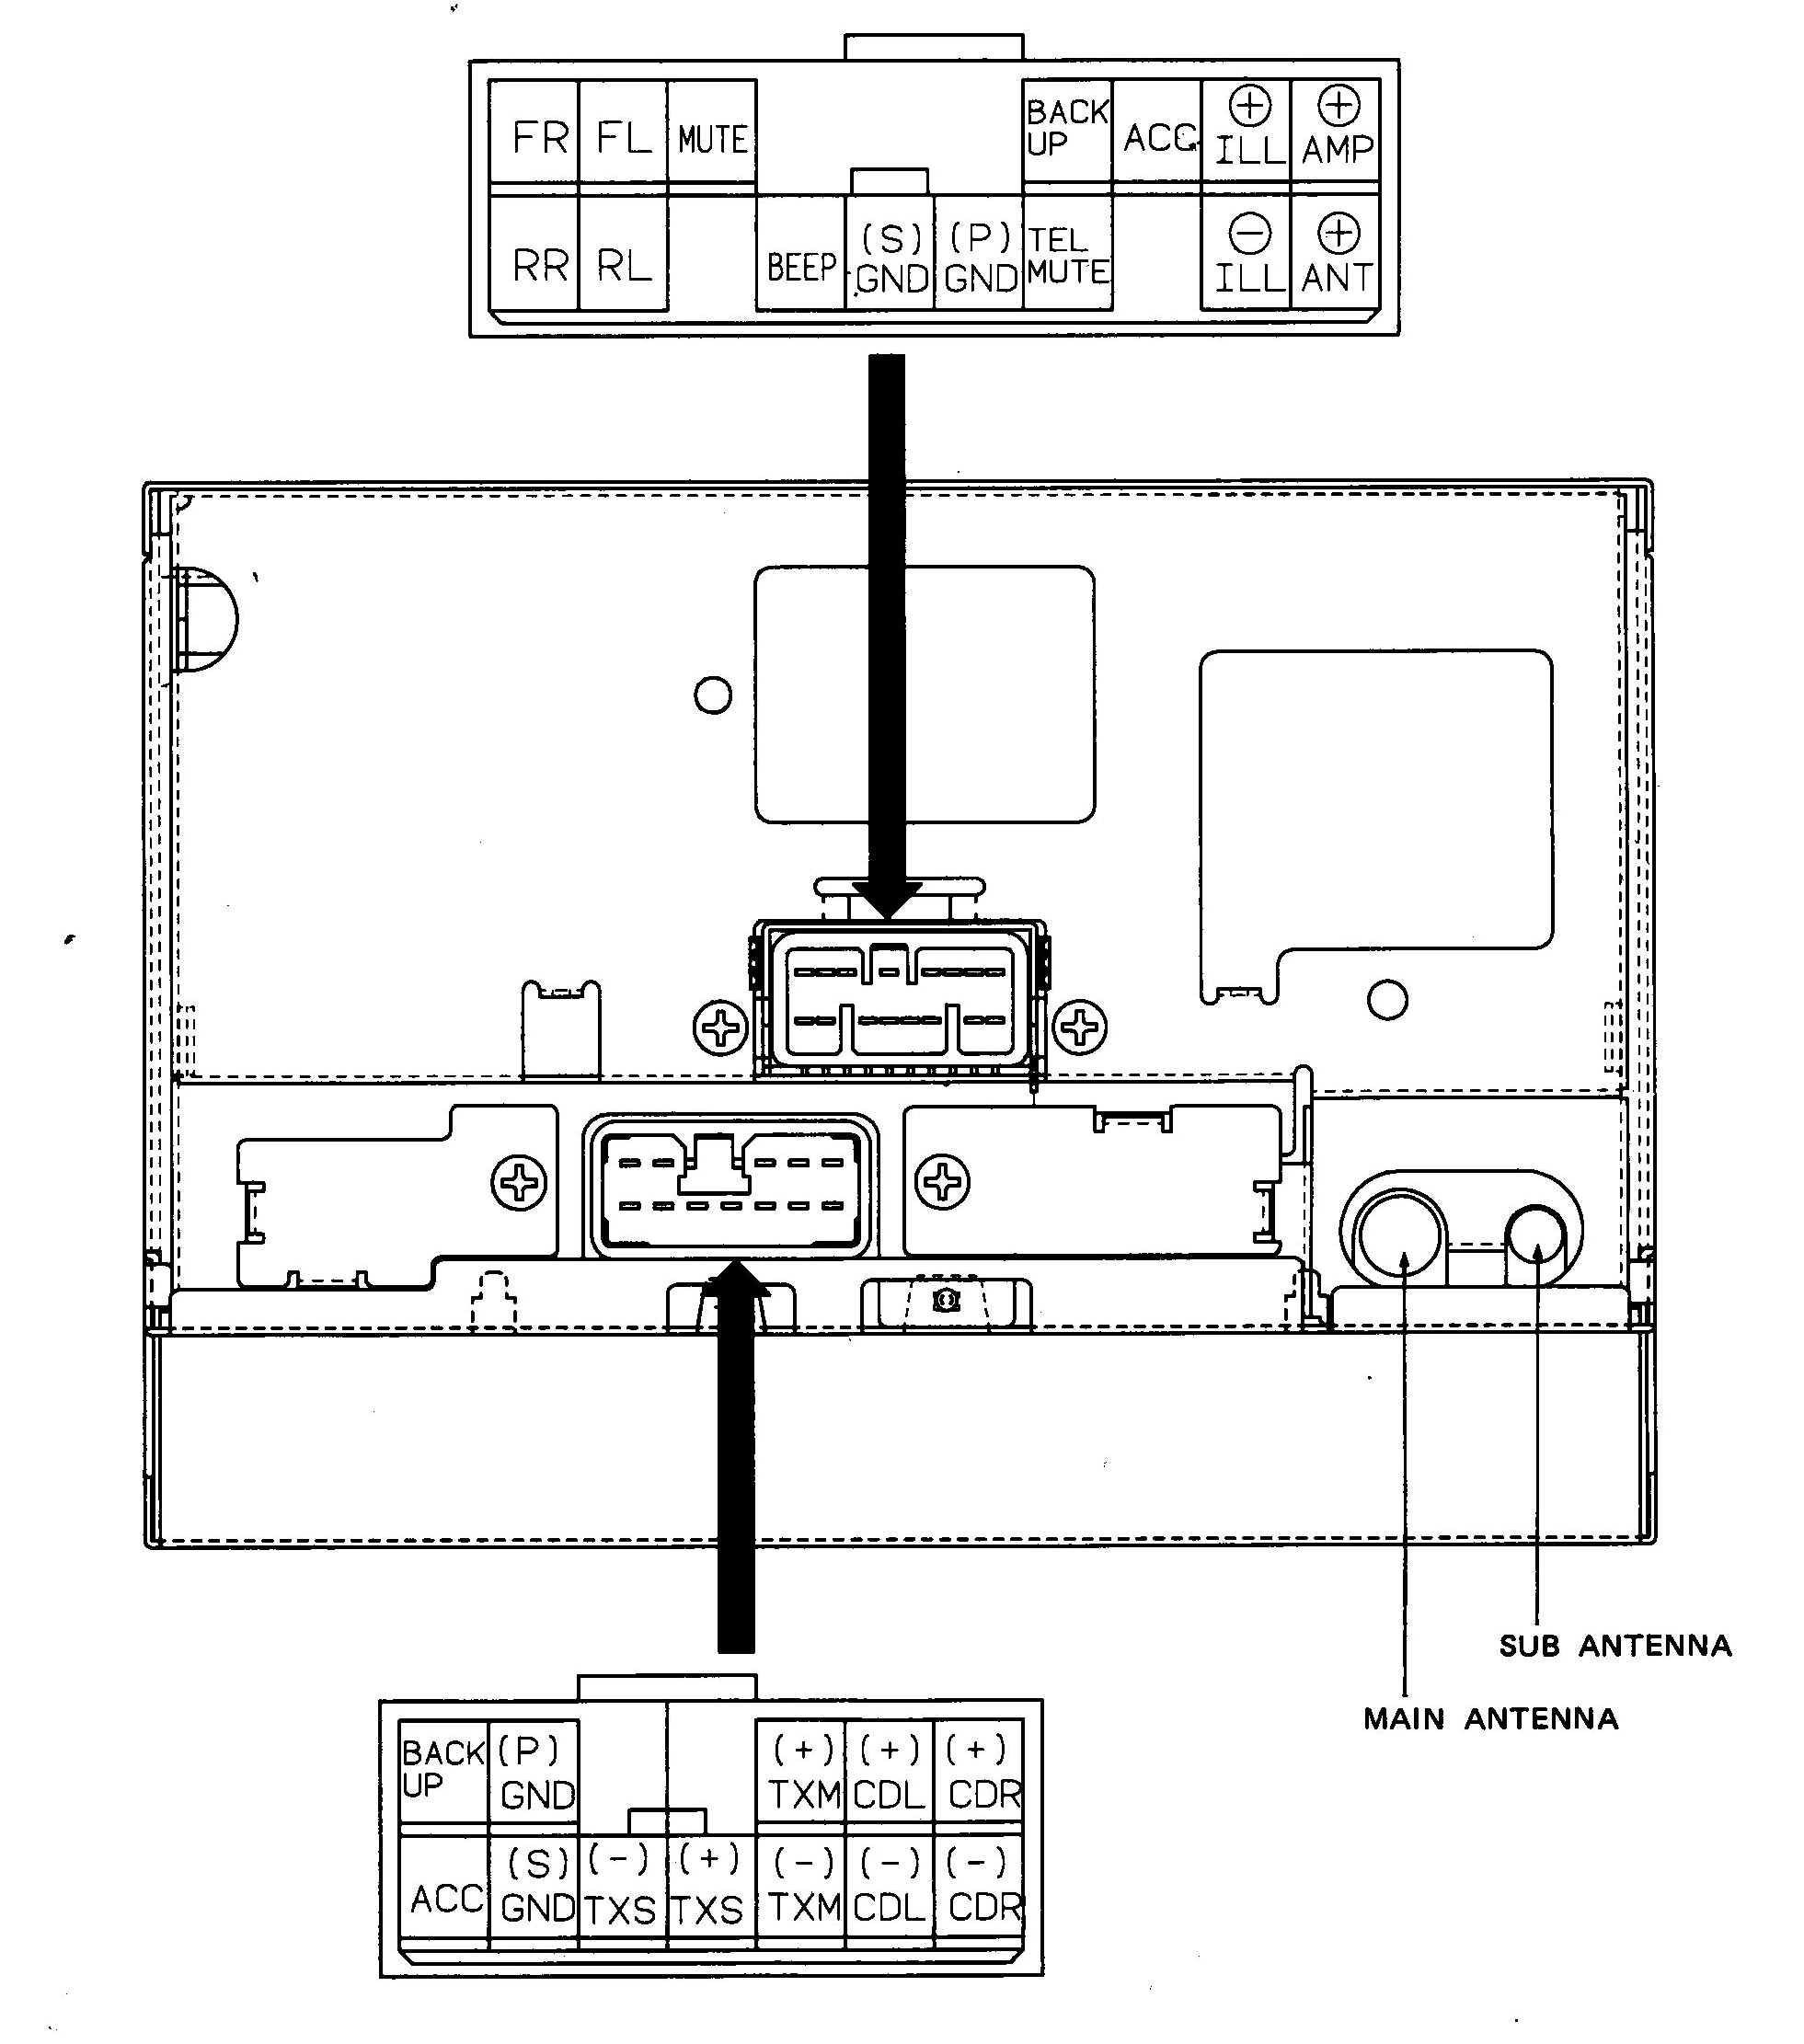 [SCHEMATICS_4JK]  DIAGRAM] 1998 Lexus Es300 Stereo Wiring Diagram FULL Version HD Quality Wiring  Diagram - REVIEWDIAGRAM.ACCADEMIA-ARCHI.IT | 2004 Lexus Es330 Radio Wiring Diagram |  | Accademia degli archi